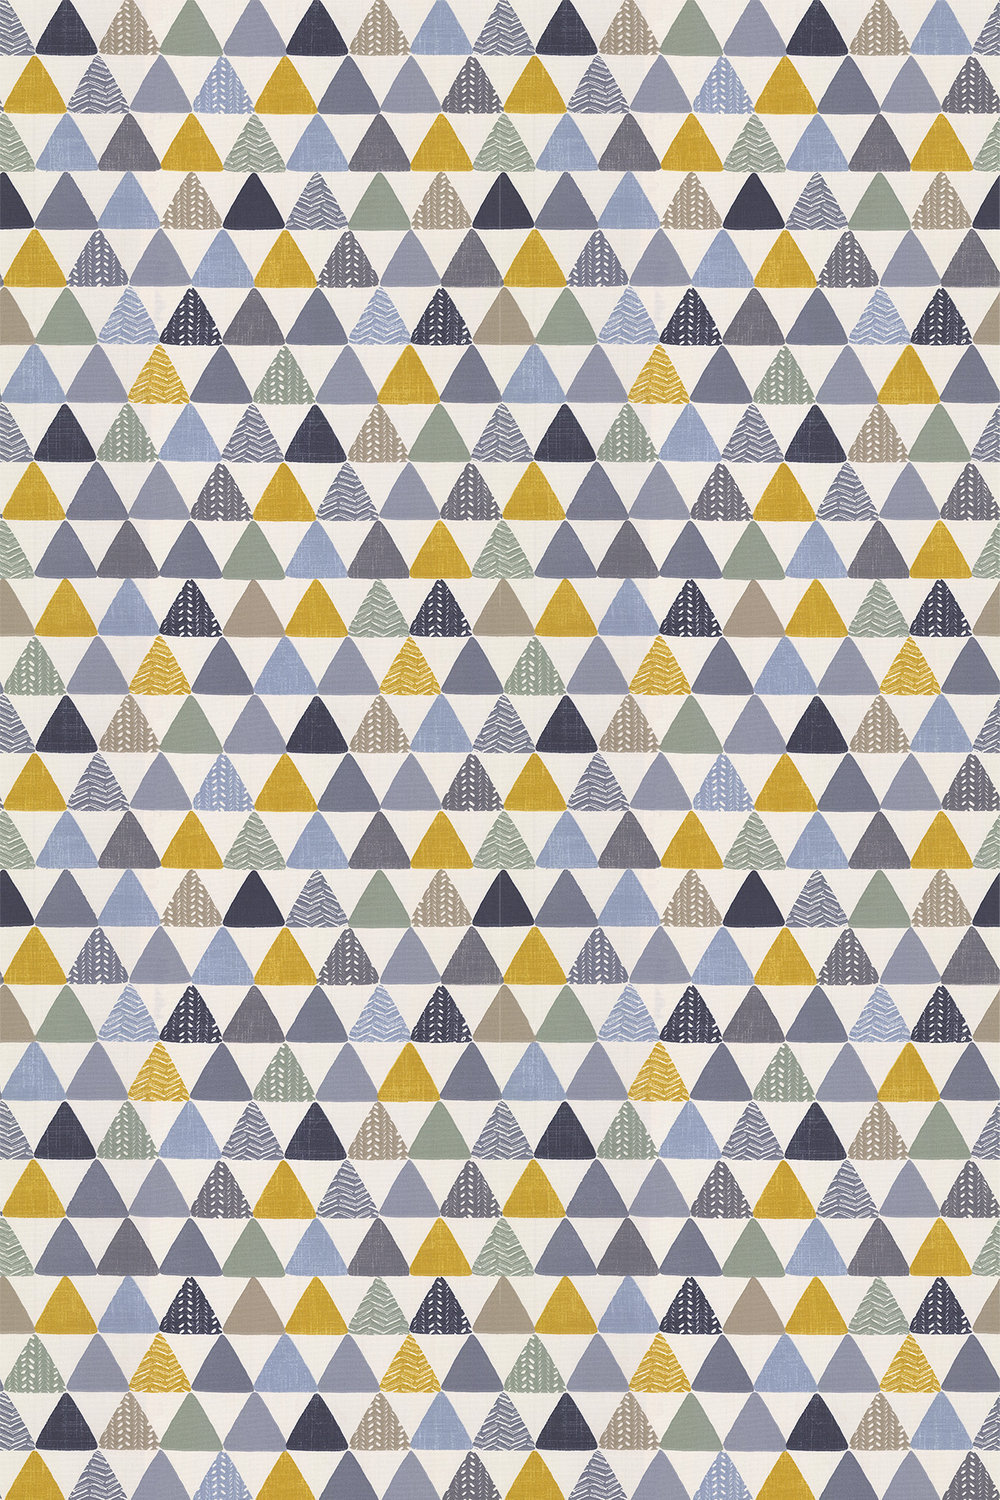 Pyramids Fabric - Ochre - by iliv